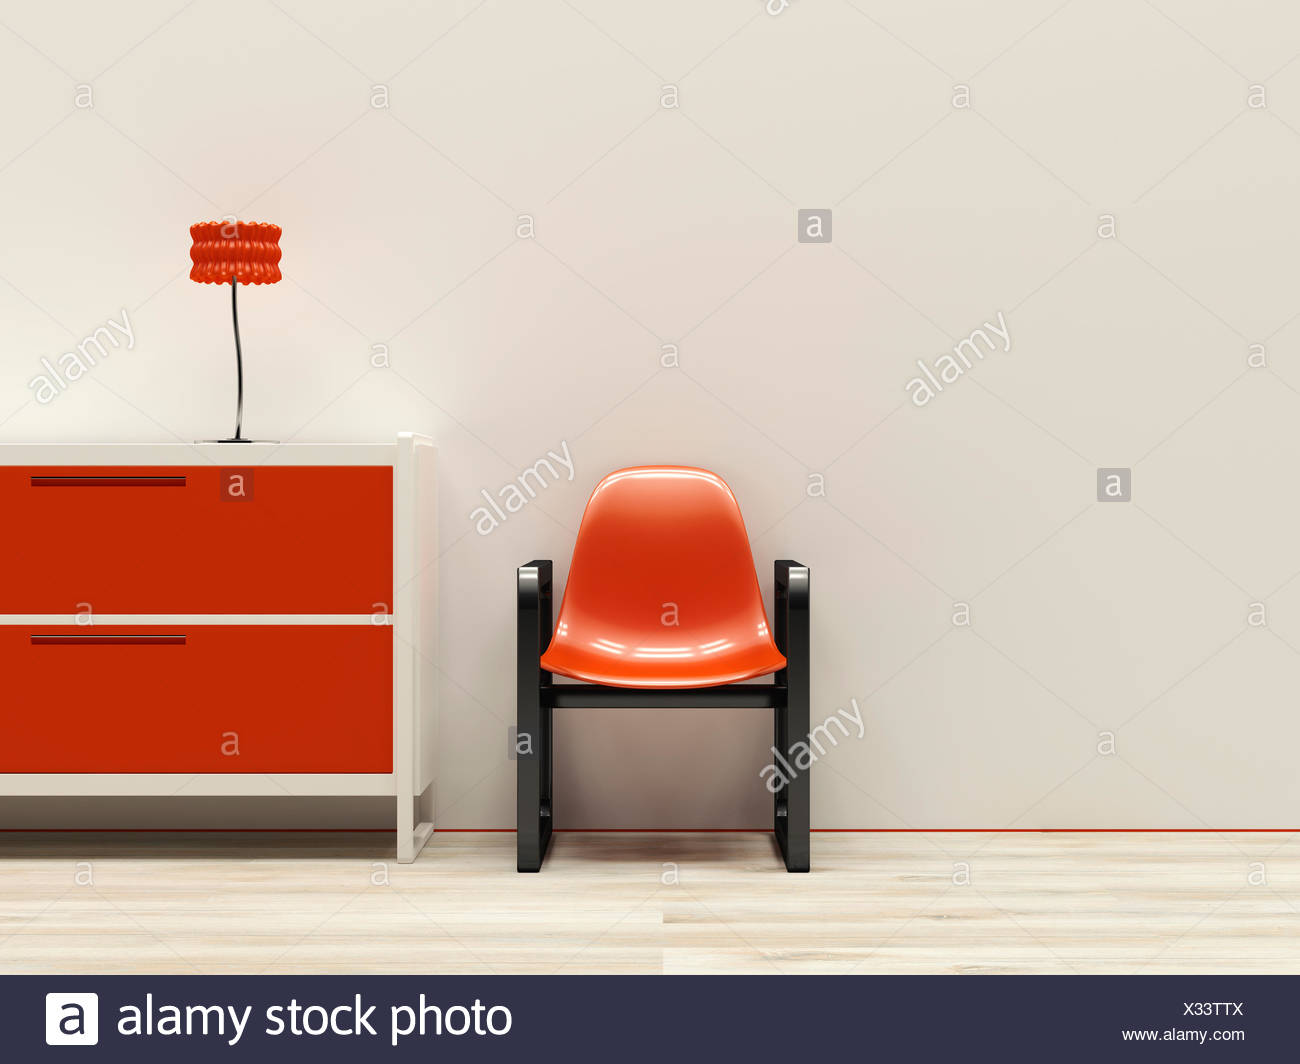 Red retro style interieur, 3D Rendering - Stock Image